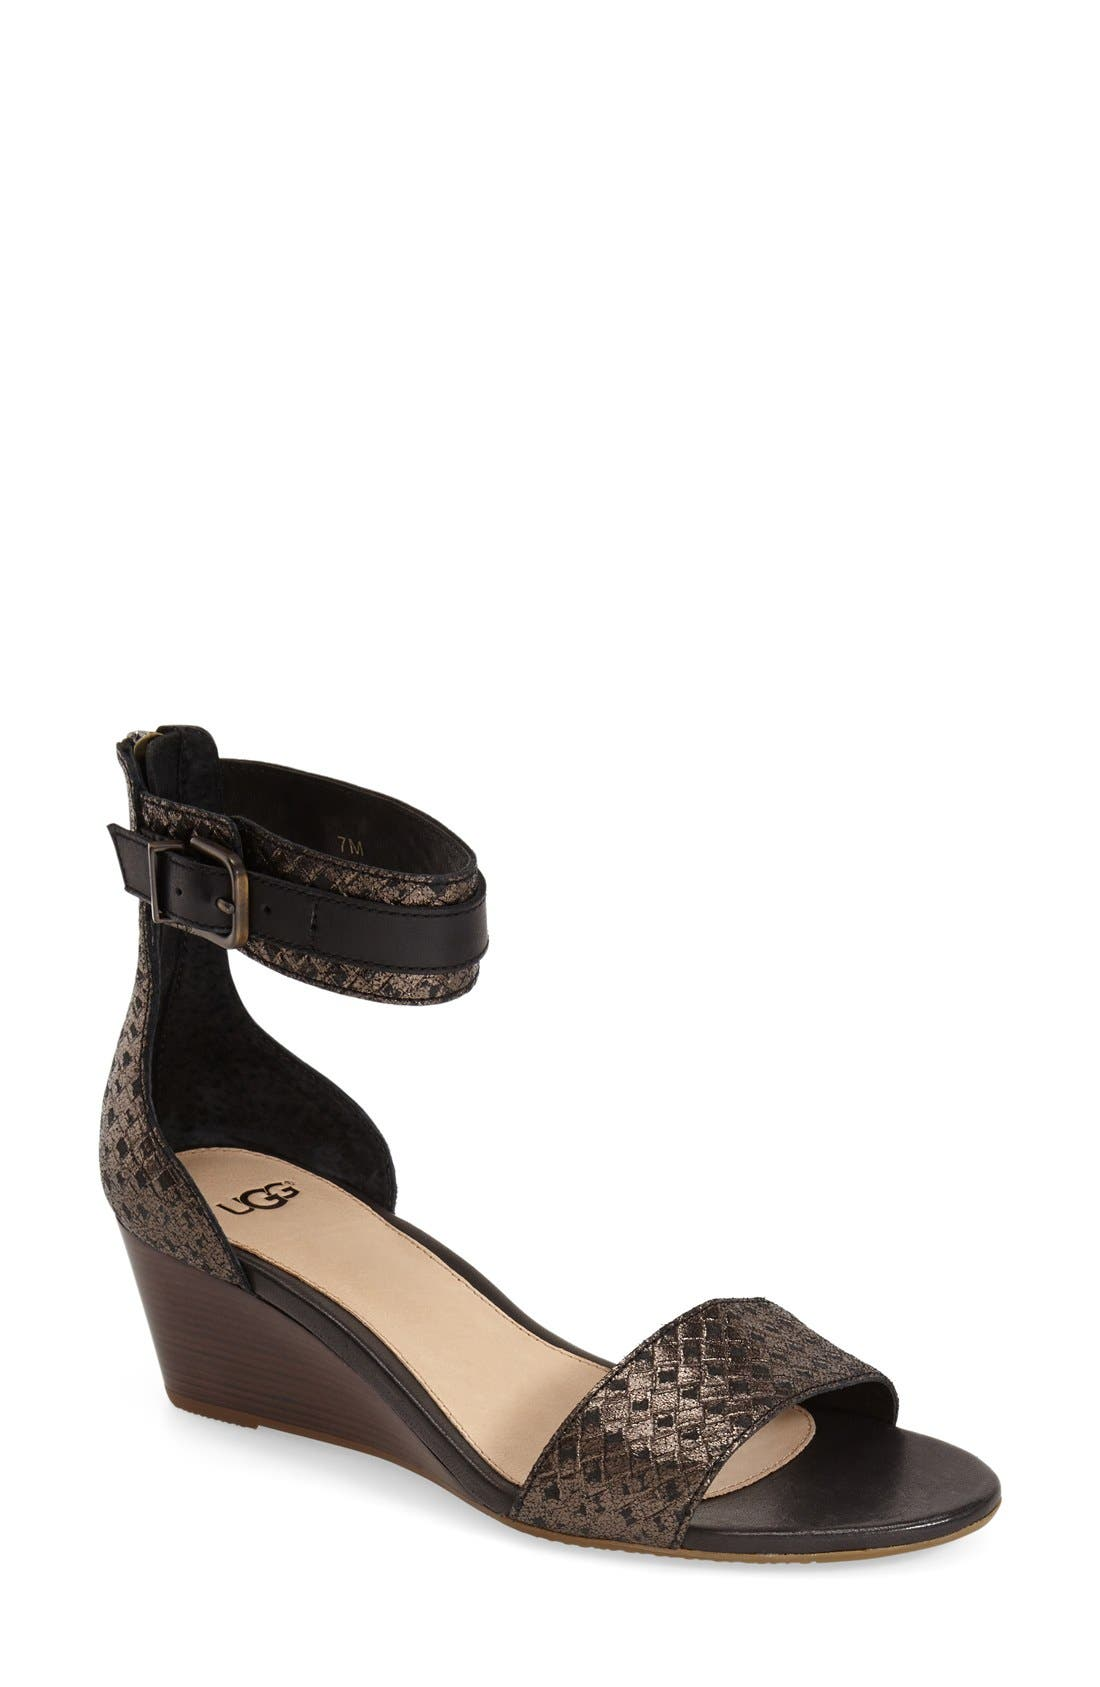 UGG<SUP>®</SUP> 'Char' Ankle Strap Wedge Sandal, Main, color, 002